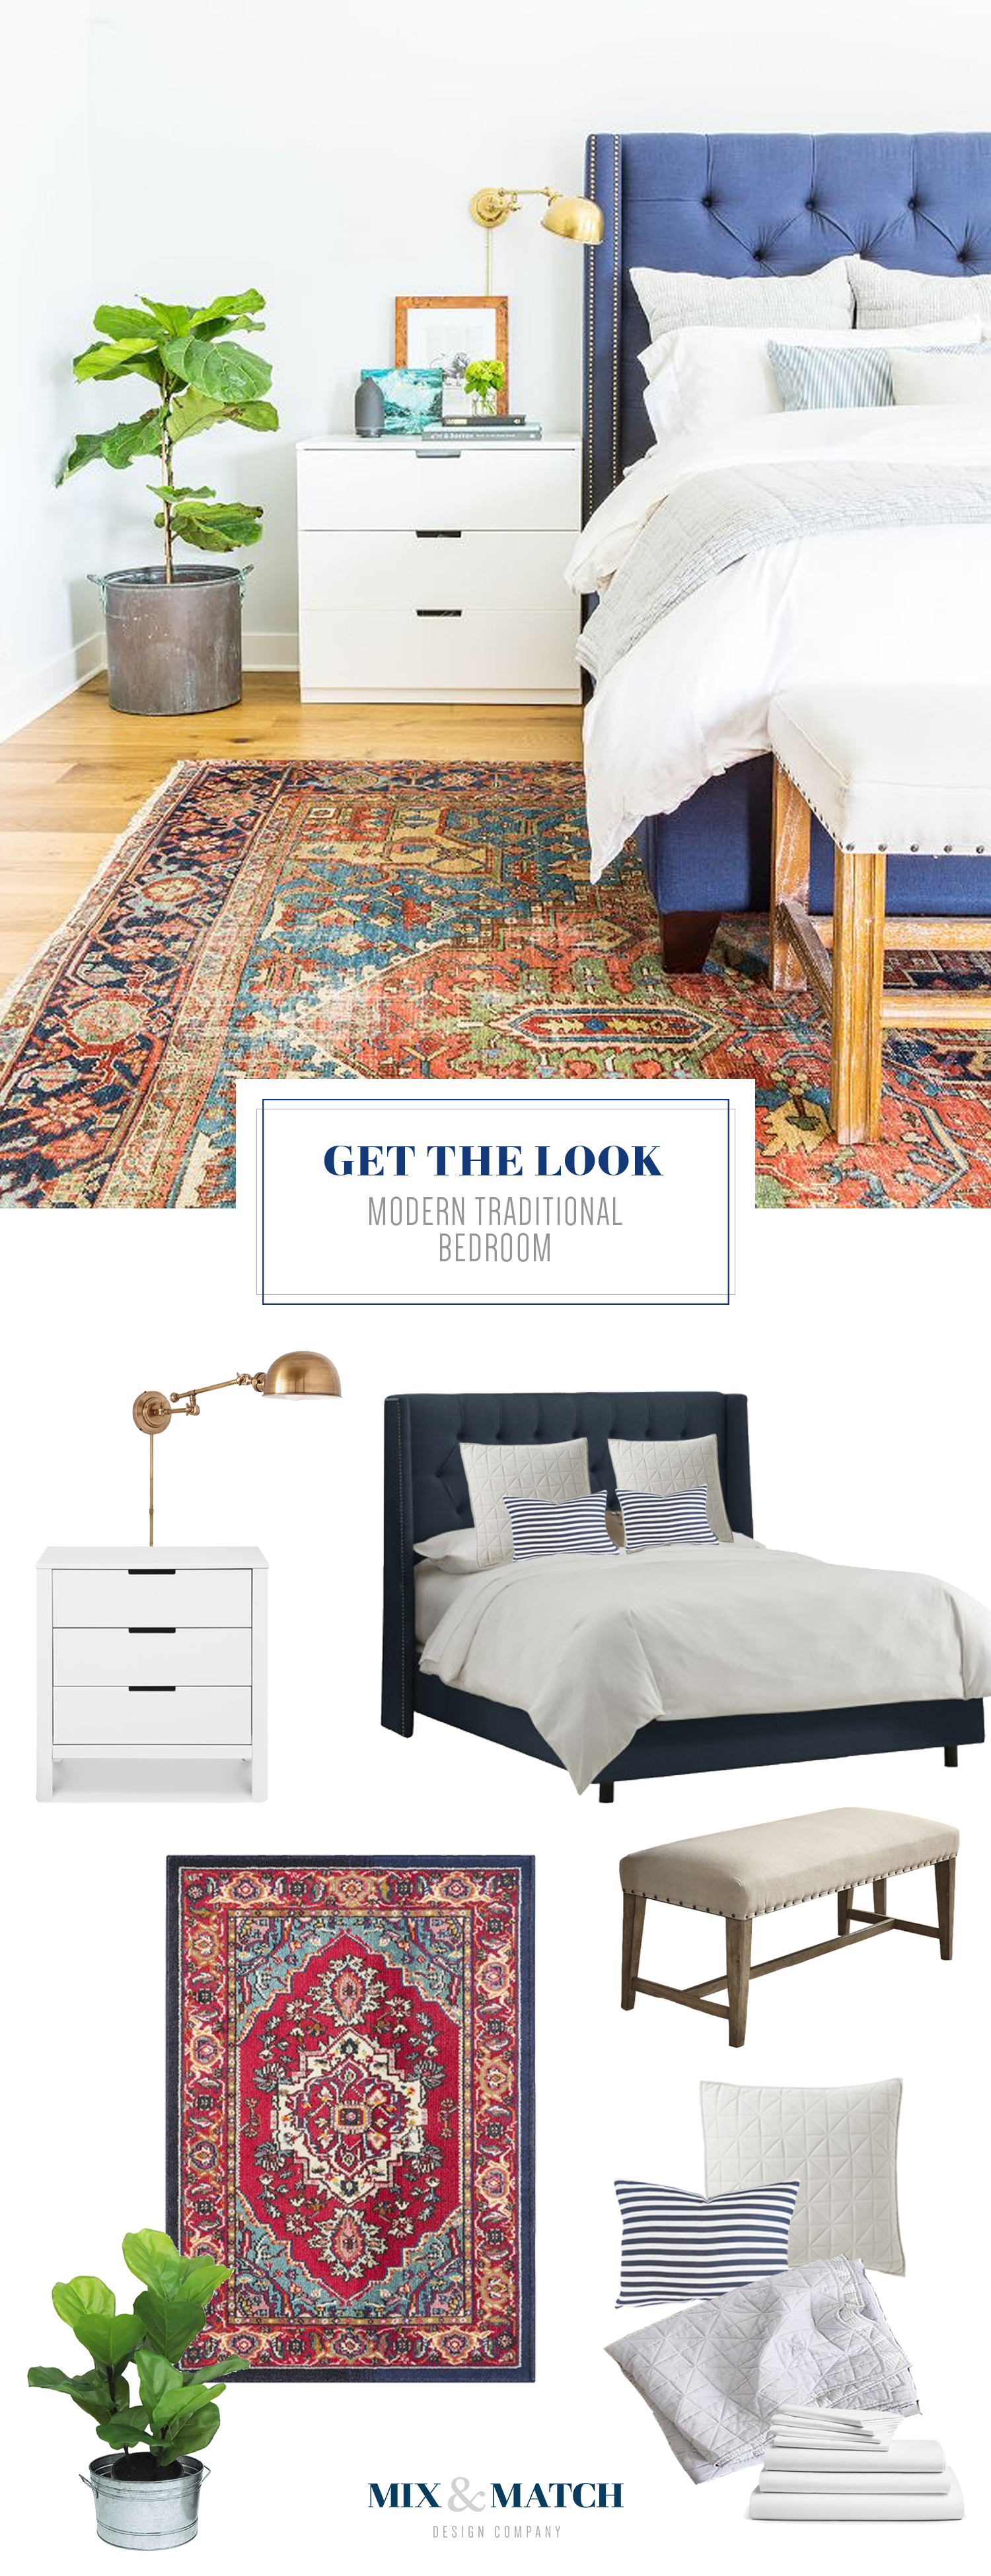 Get the look of this modern traditional bedroom on the blog! // persian rug bedroom, fiddle leaf fig, neutral bedroom, upholstered bed, upholstered headboard